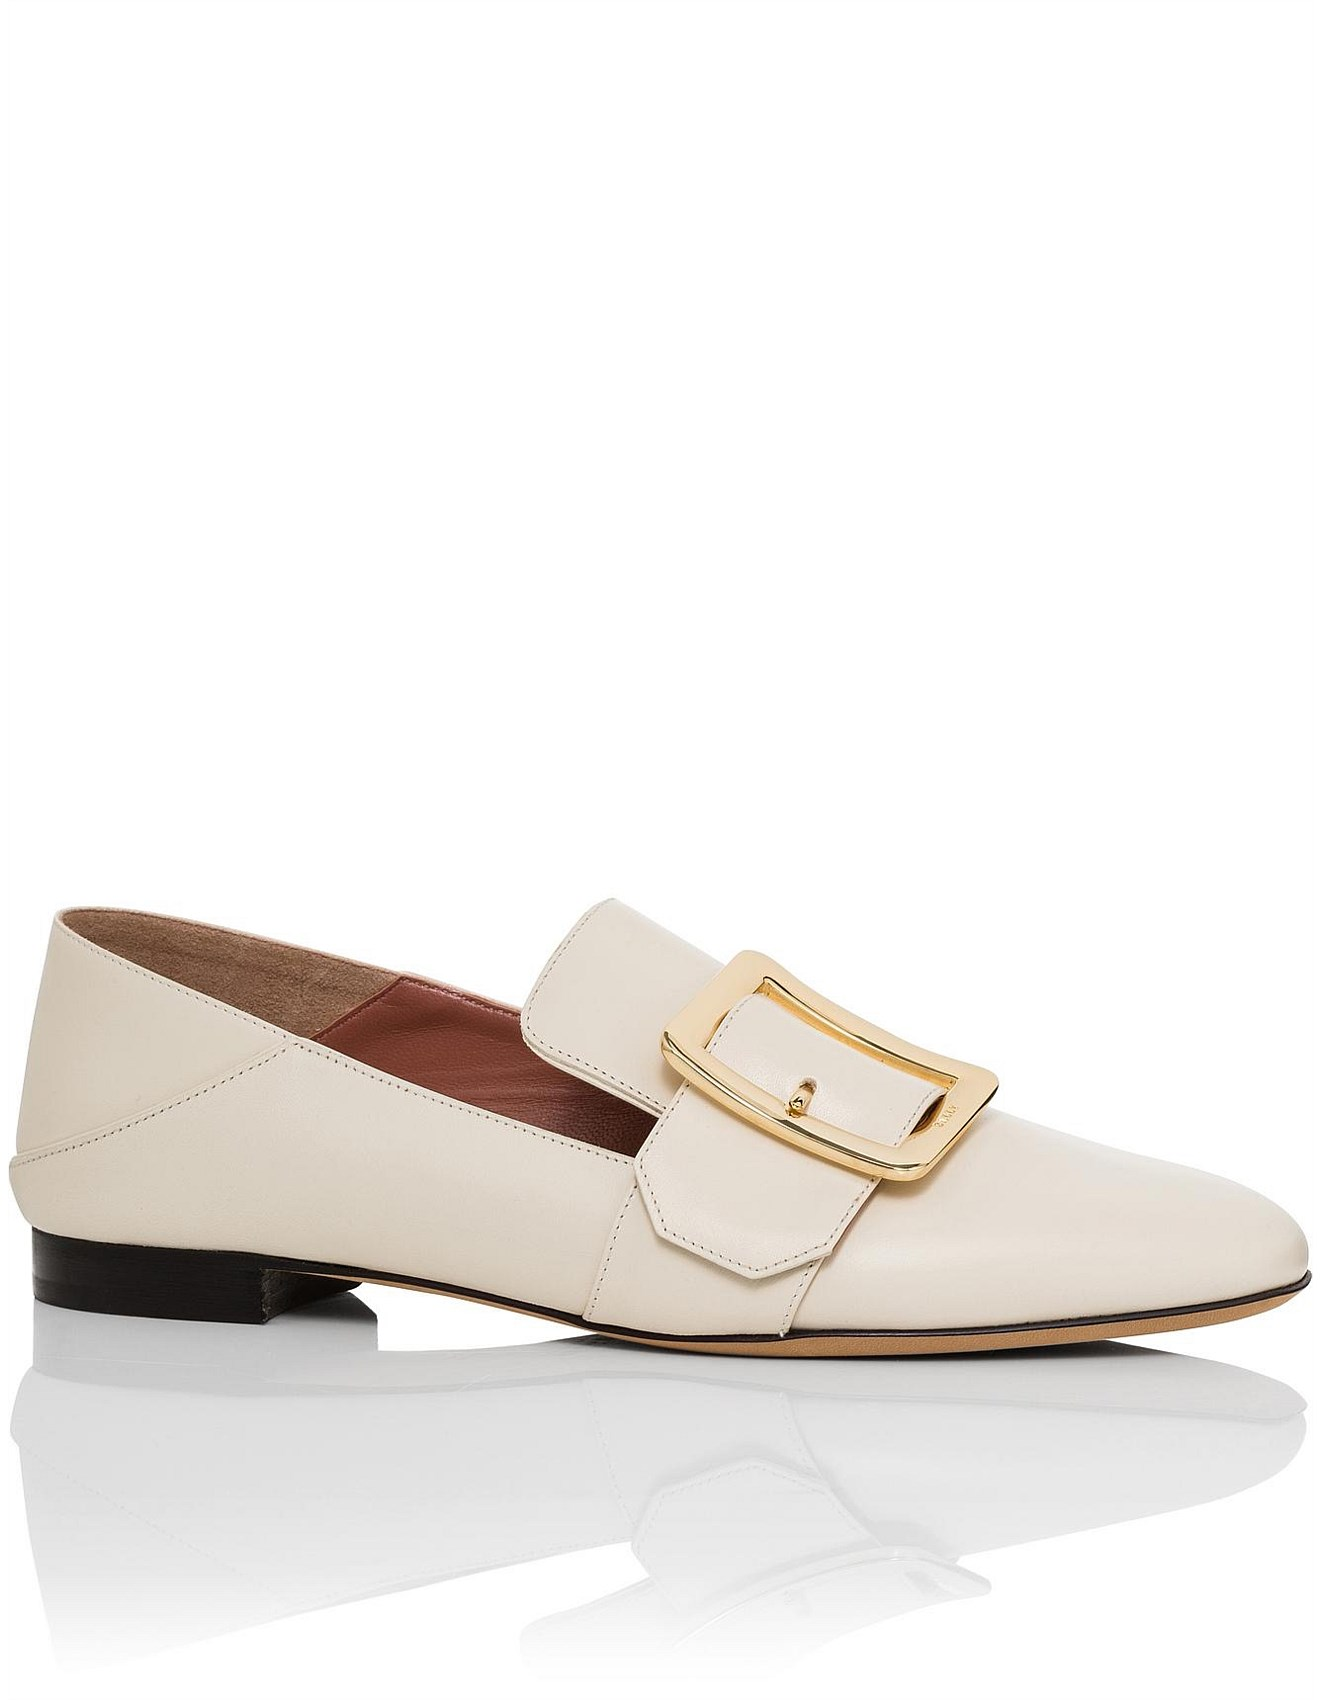 83095c69f3661 New In Shoes | Latest Shoes | Shoes Online | David Jones - JANELLE SLIPPER  108